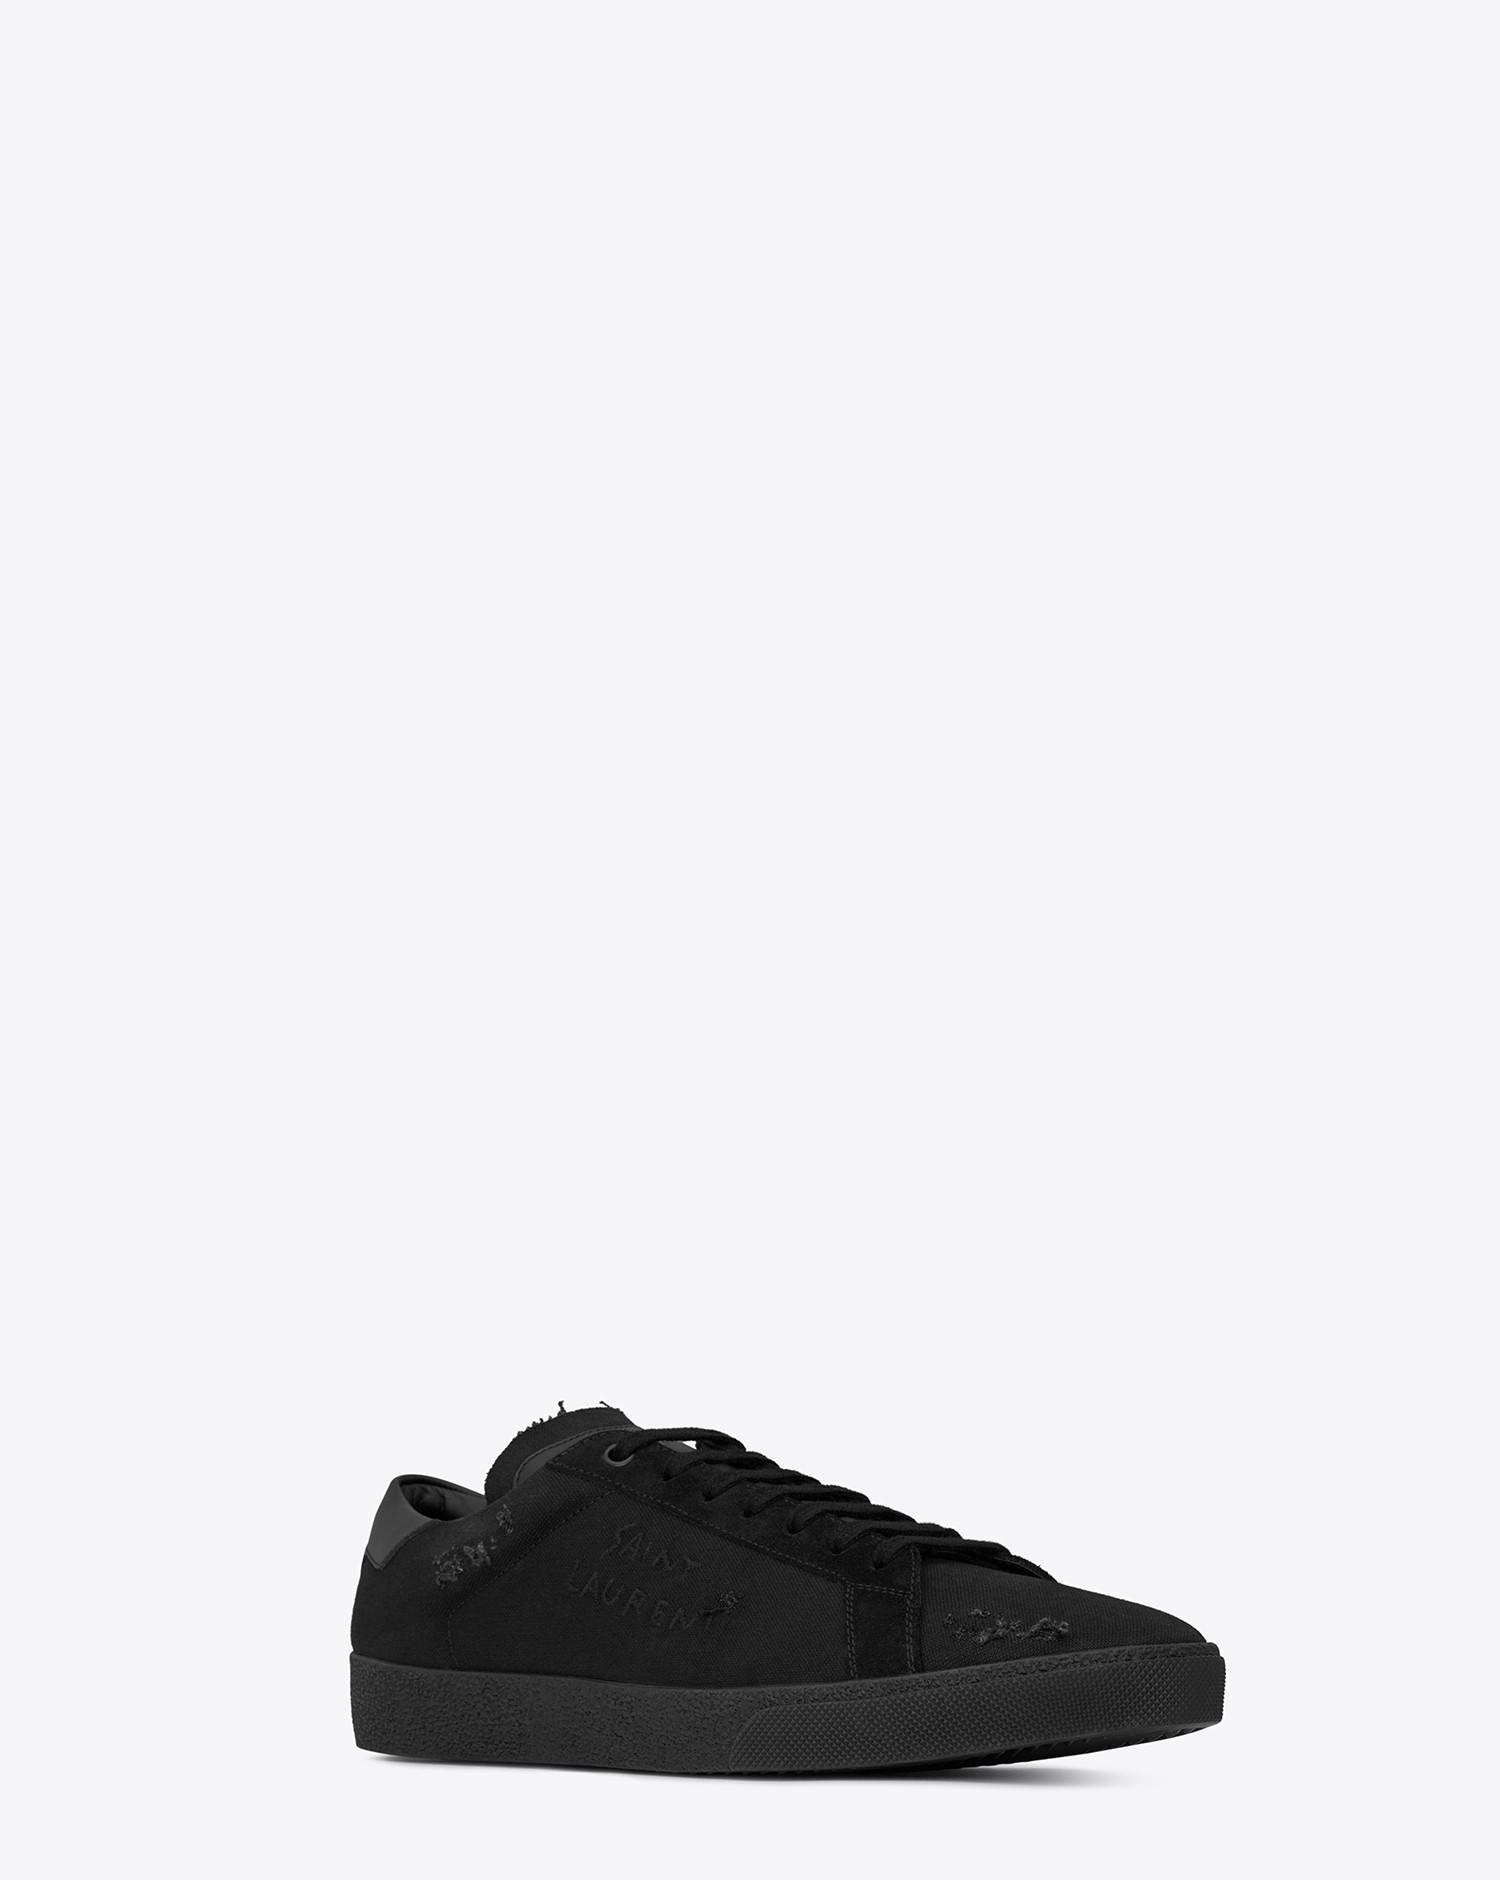 13a967021e7c7 Lyst - Saint Laurent Sl 06 in Black for Men